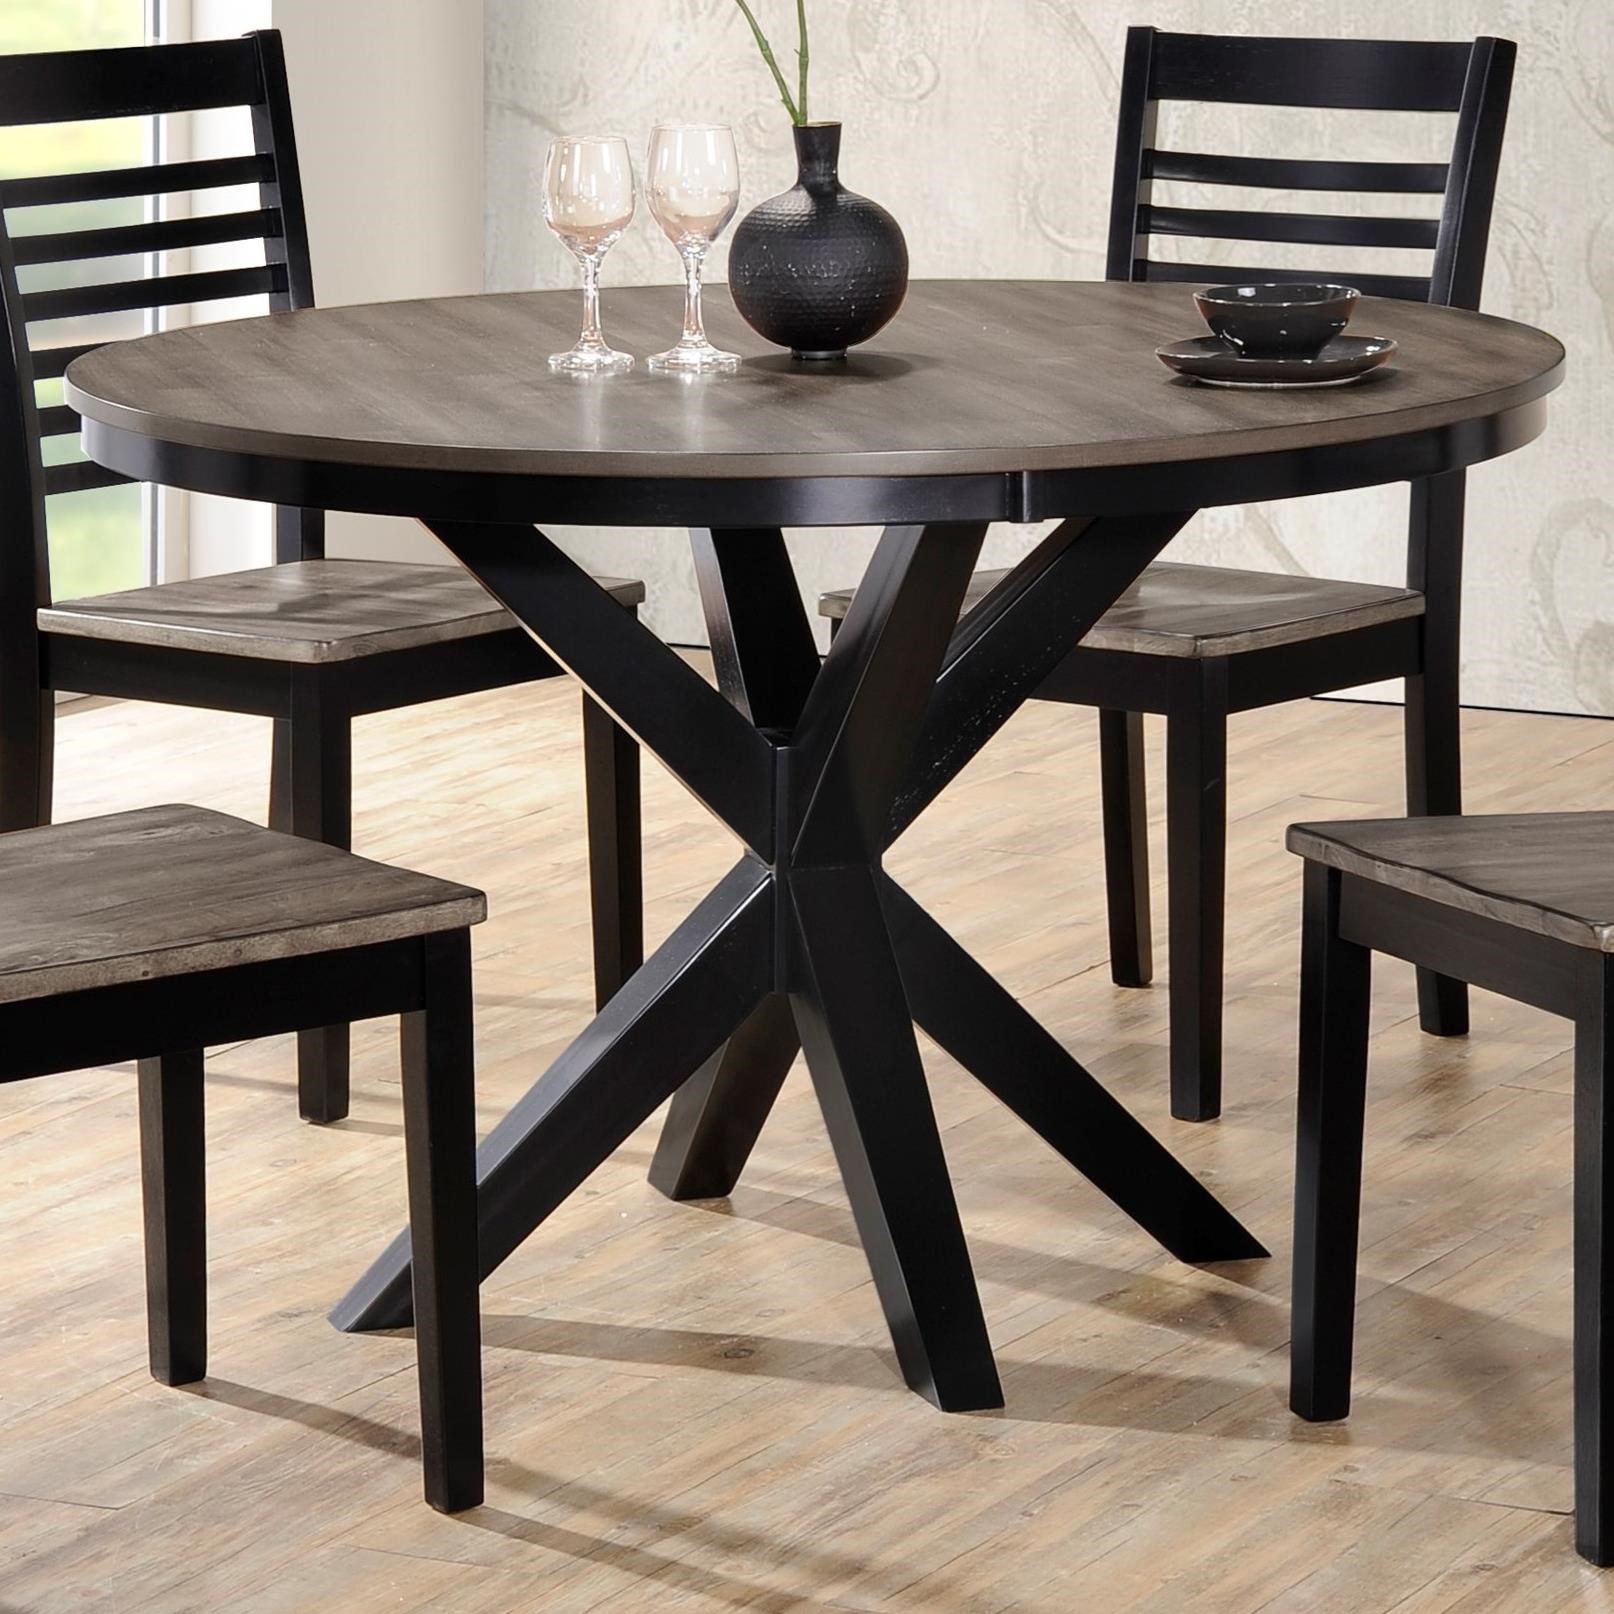 South Beach Dining Table by United Furniture Industries at Bullard Furniture